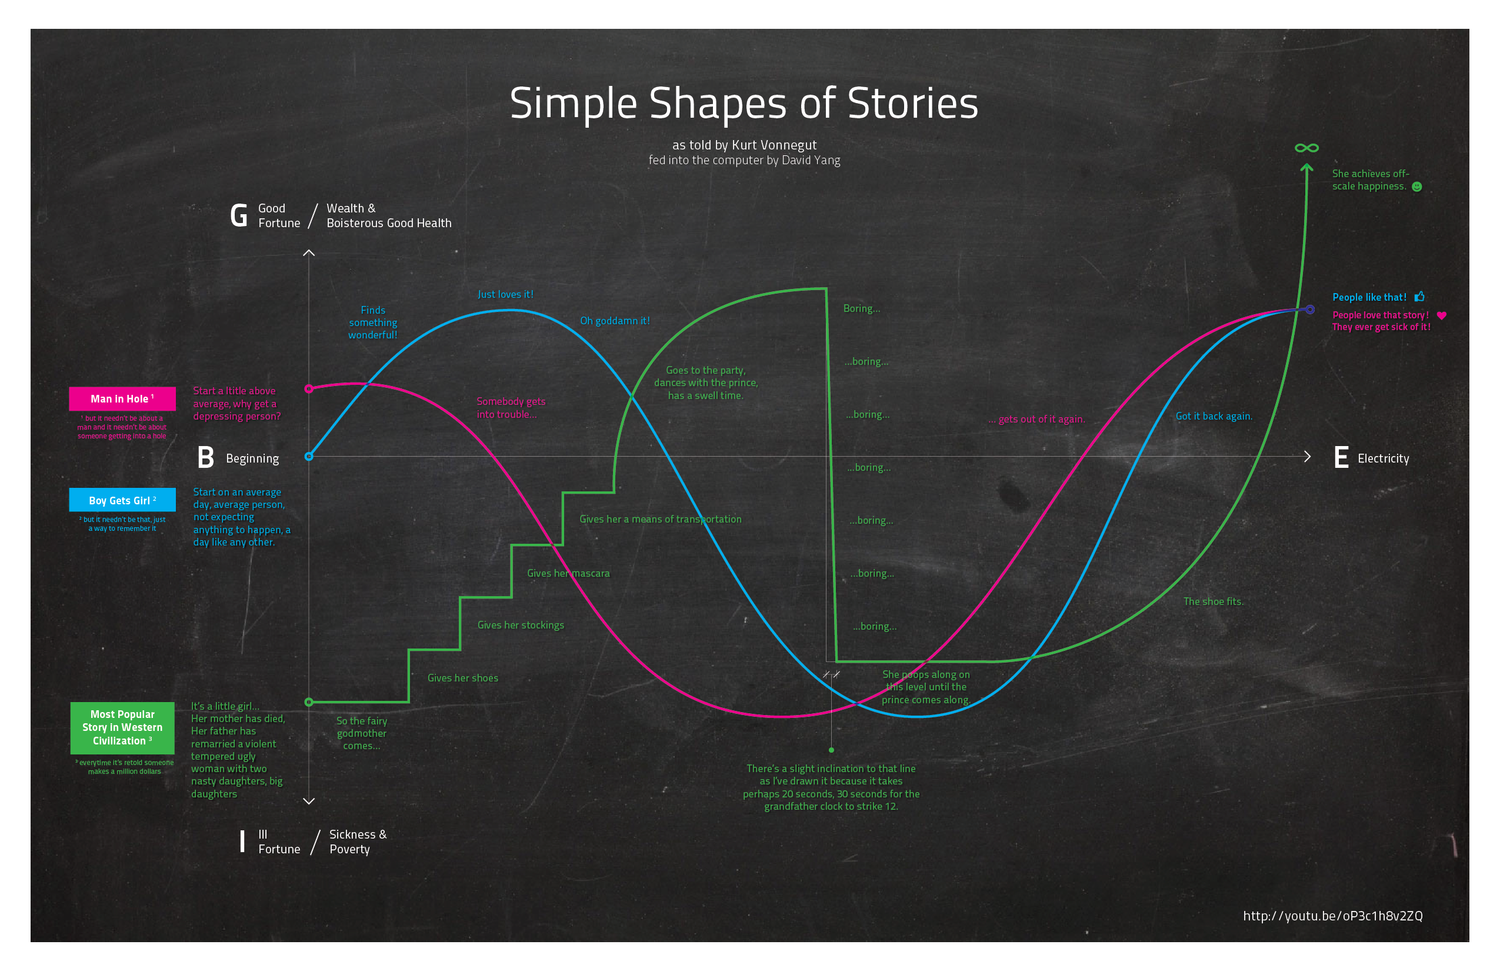 vonnegut-shapes of stories.png